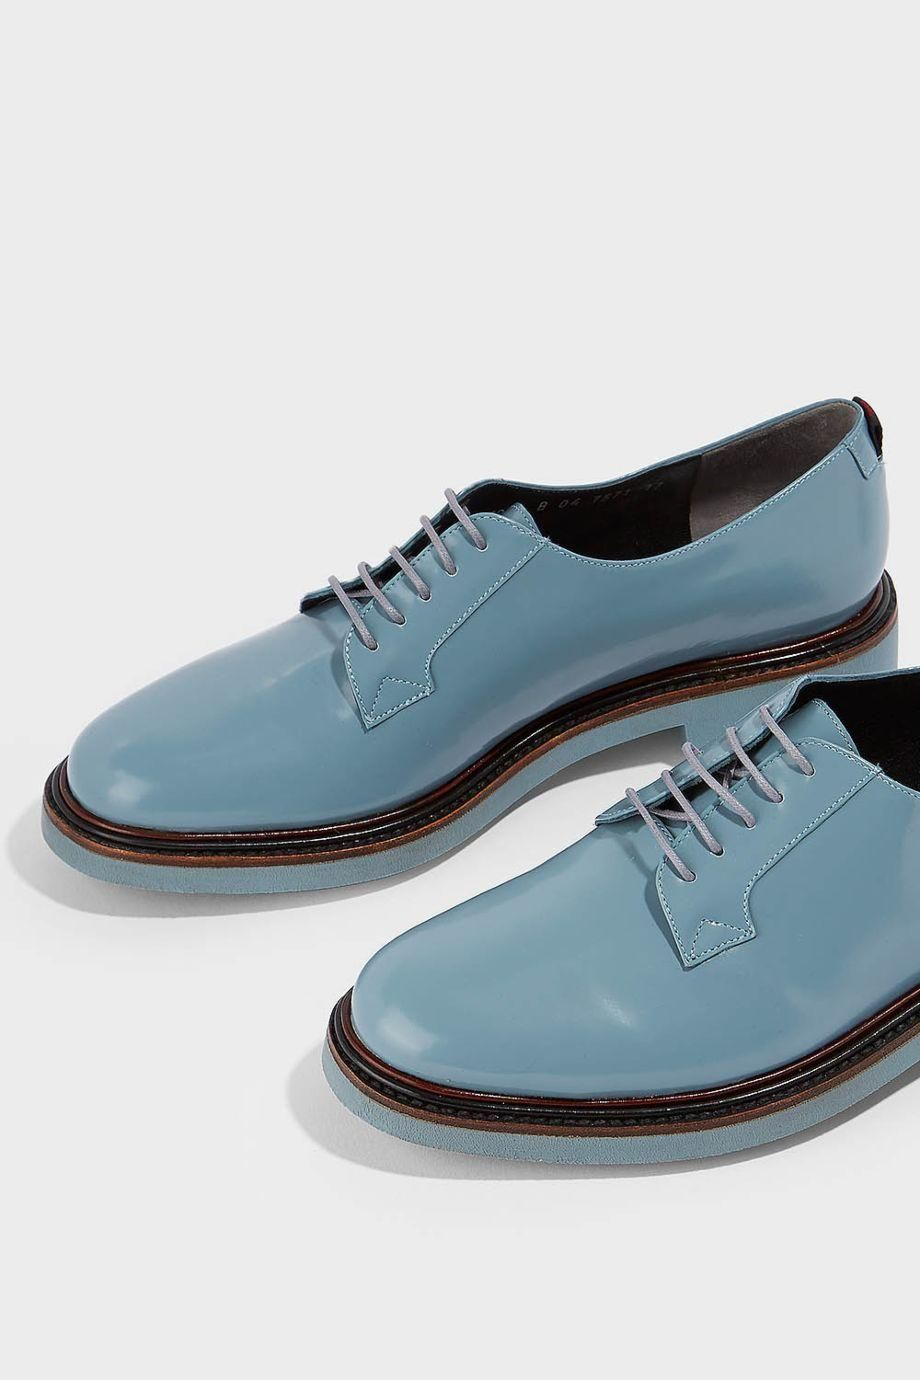 finishline sale online outlet locations cheap online Robert Clergerie Brogue Patent Leather Oxfords extremely cheap price clearance low shipping fee Vz9RqLj6c